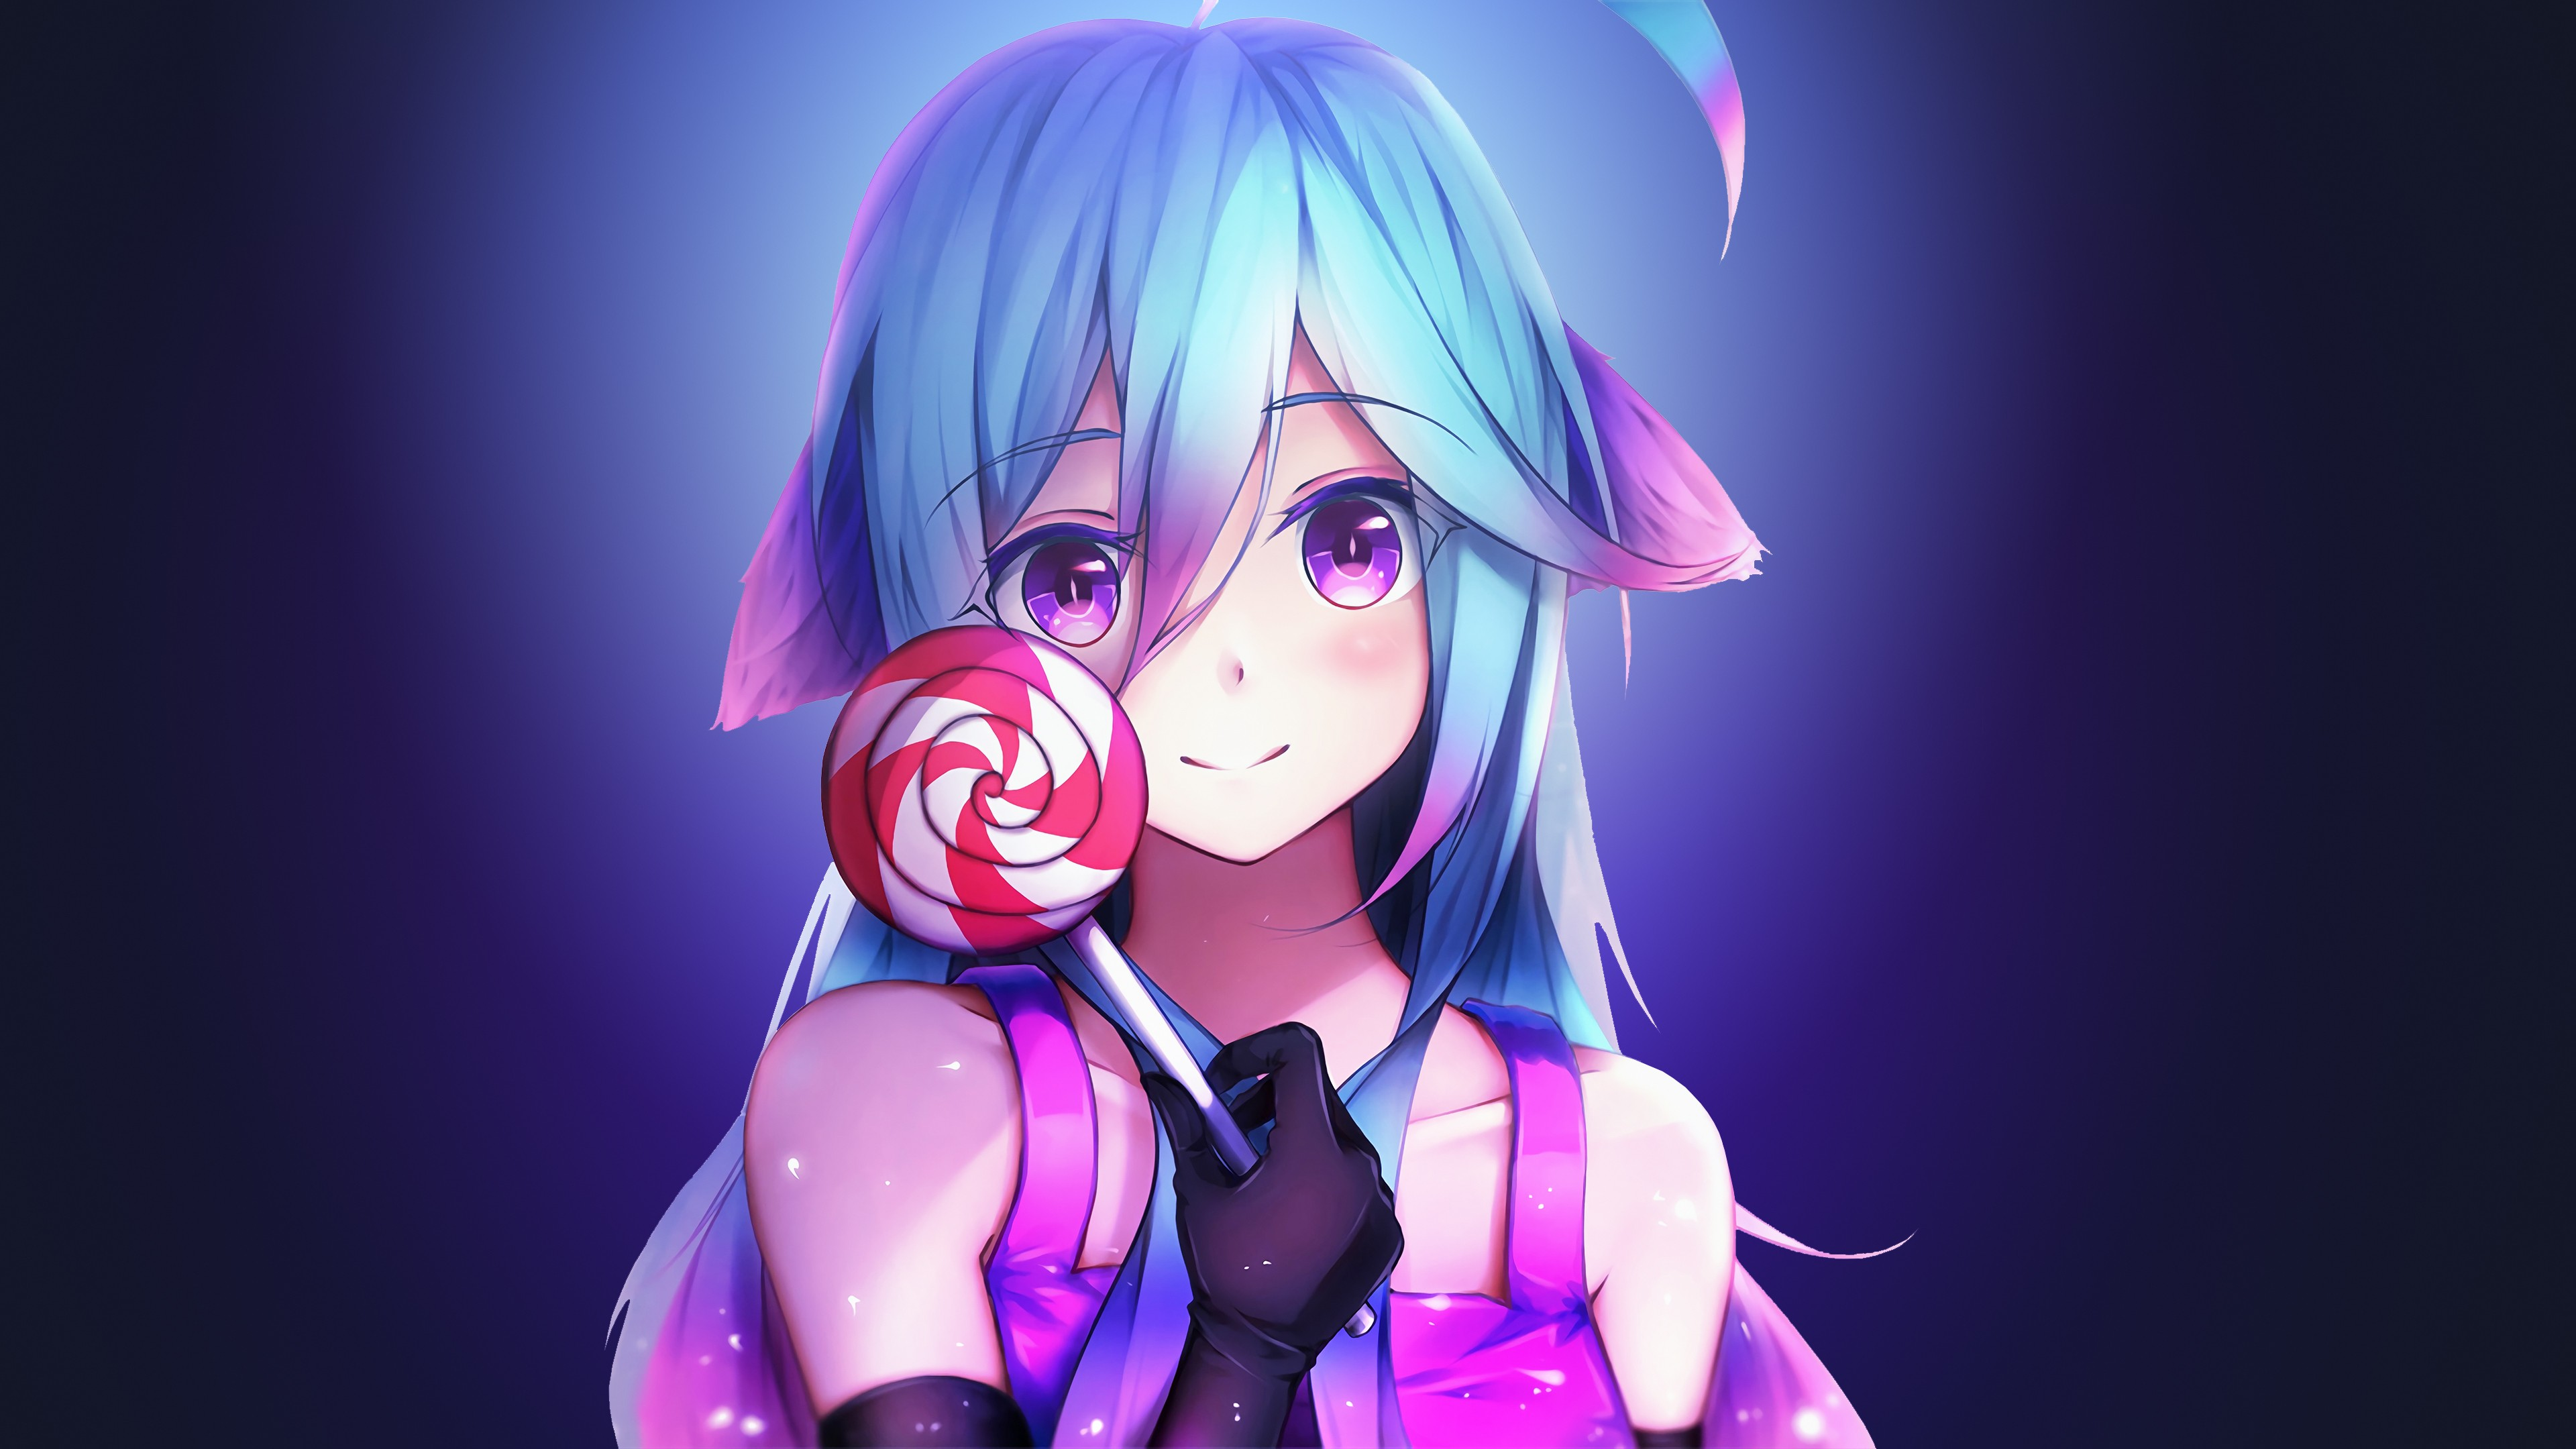 Anime Girl Cute Rainbows And Lolipop Hd Anime 4k Wallpapers Images Backgrounds Photos And Pictures